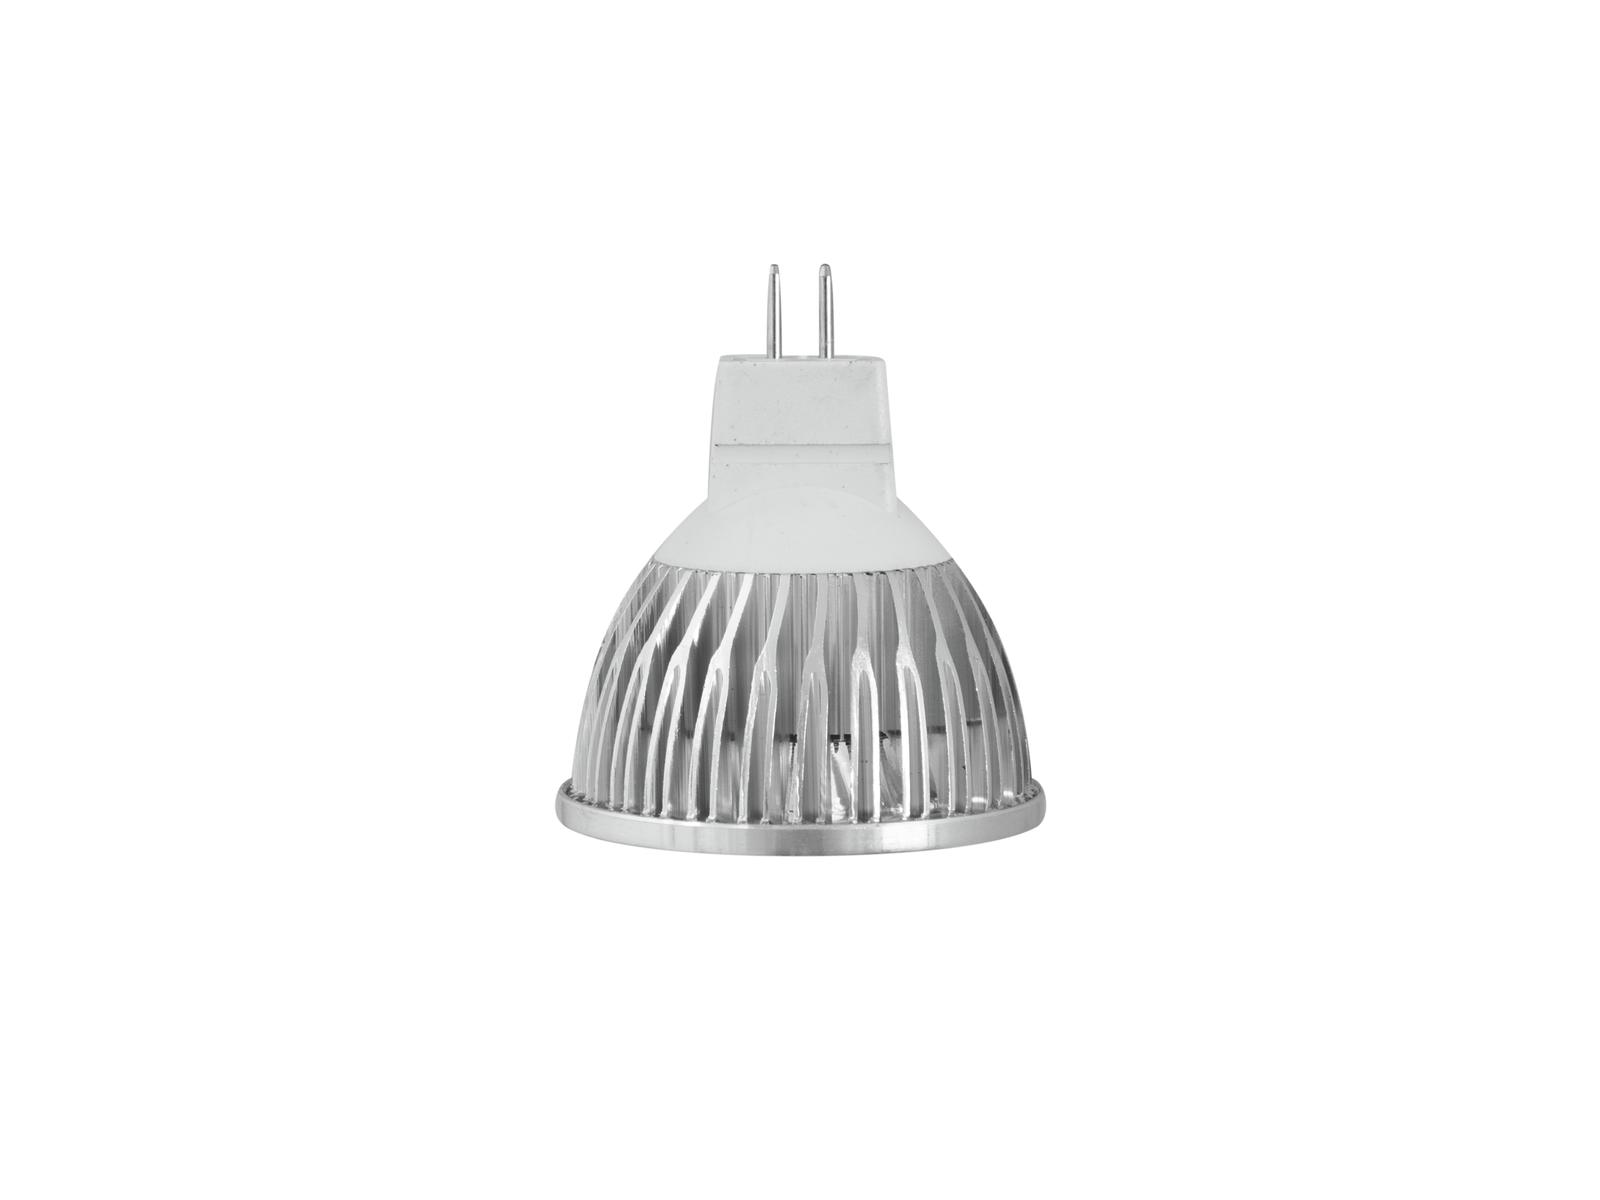 OMNILUX MR-16 12V GX-5,3 5W COB LED 3000K